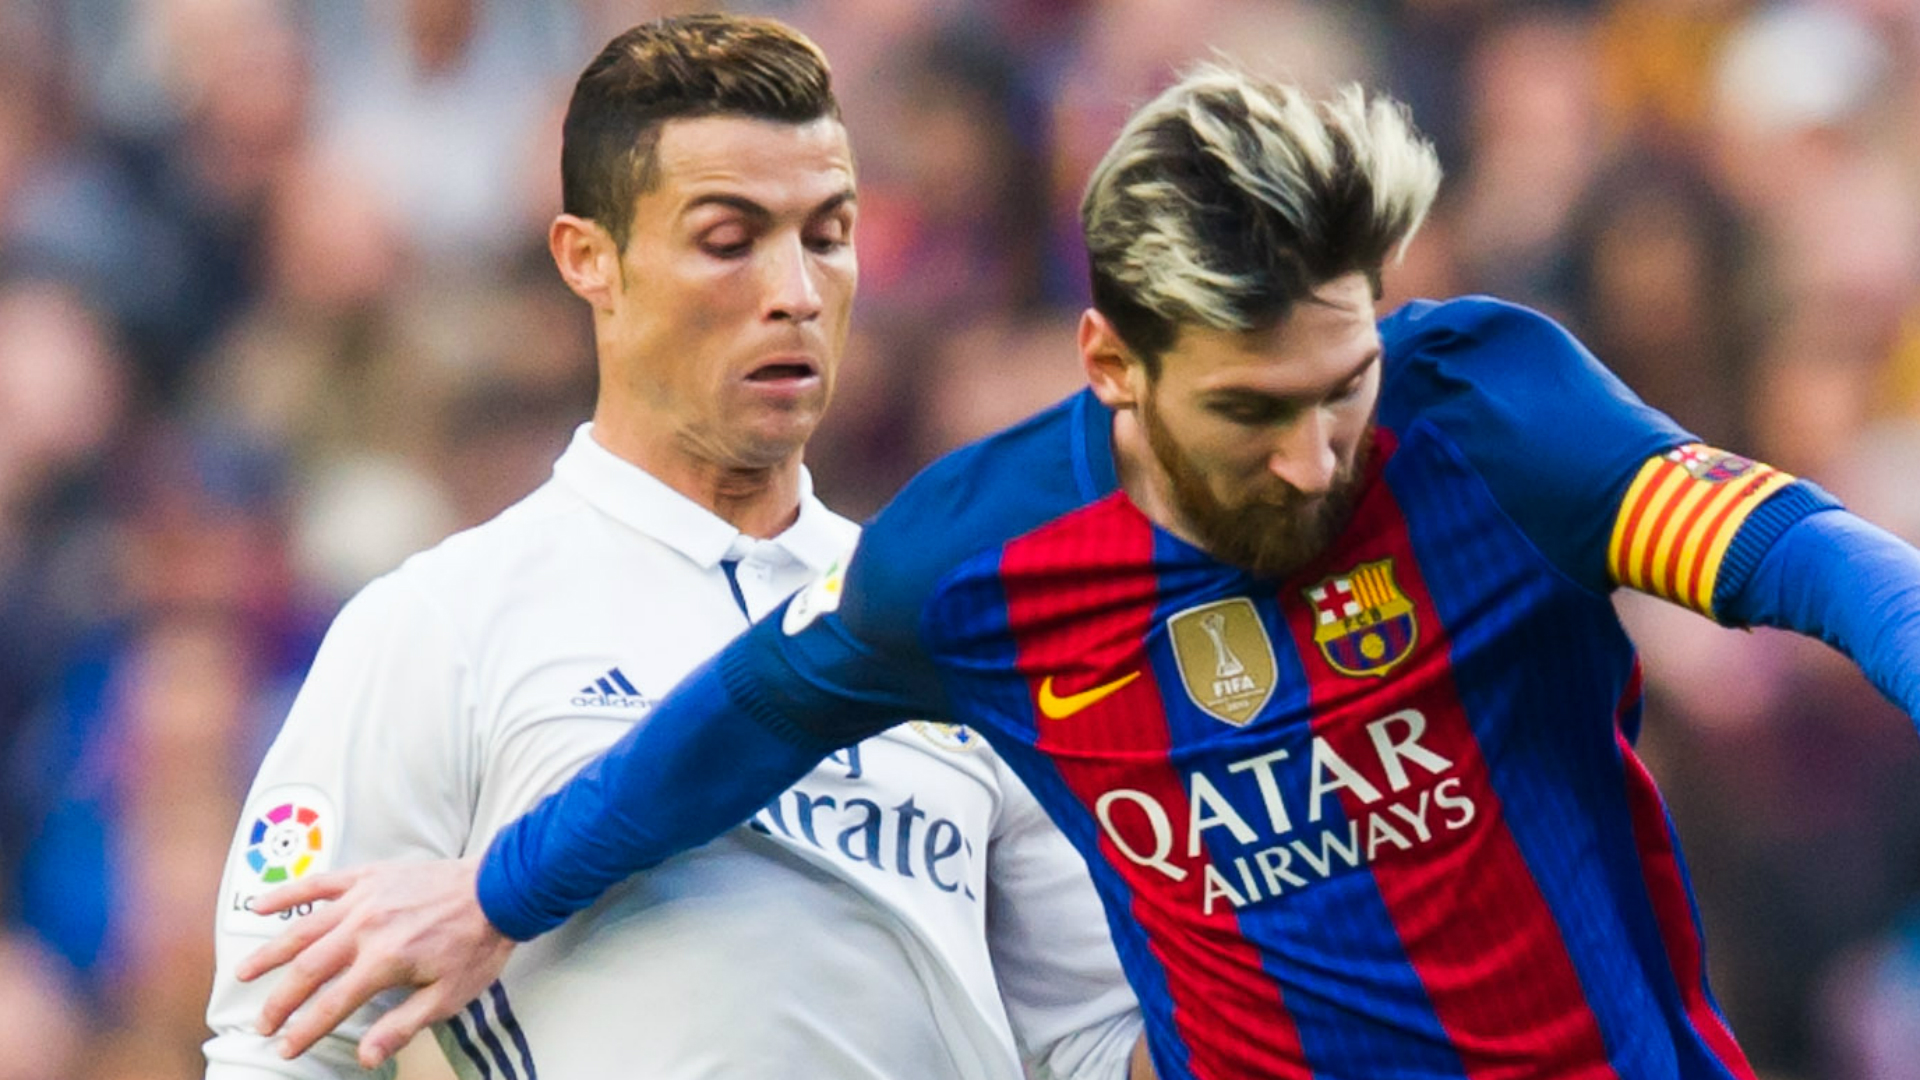 Ramos: Let's have two Ballon d'Or awards - one for Messi and Ronaldo and one for everyone else